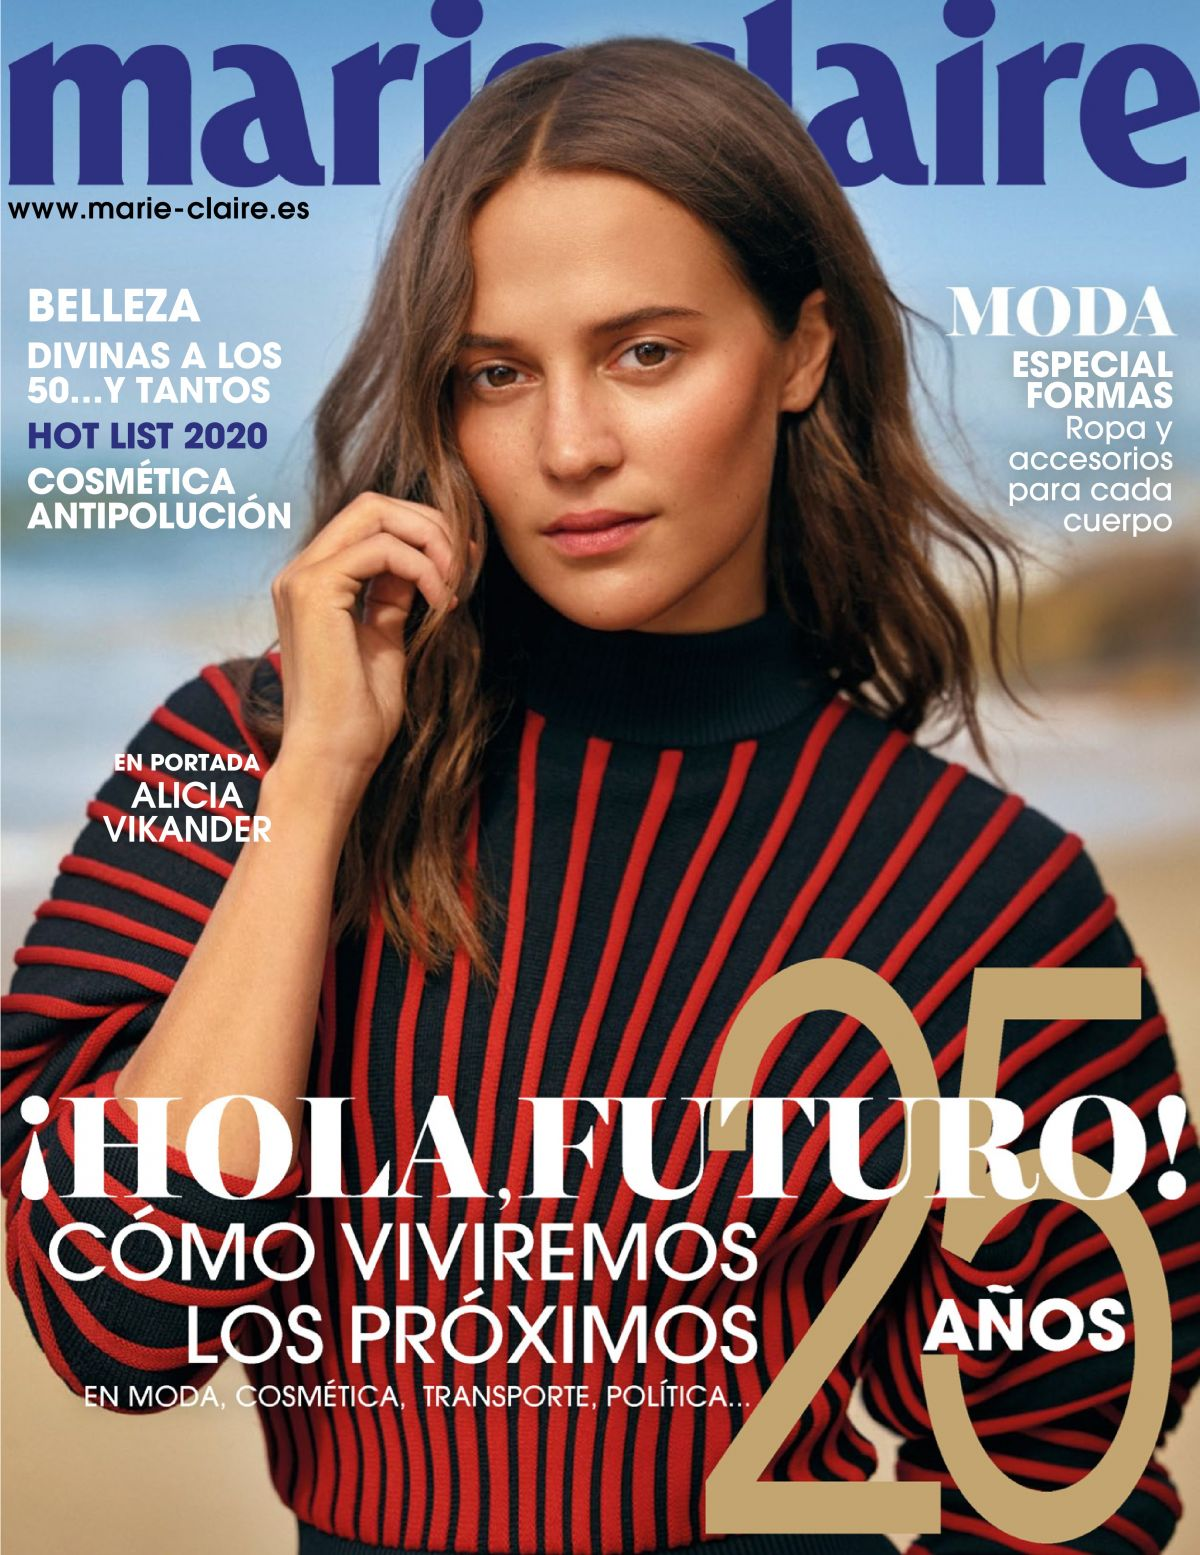 Alicia Vikander in Marie Claire Magazine, Spain - January 2020